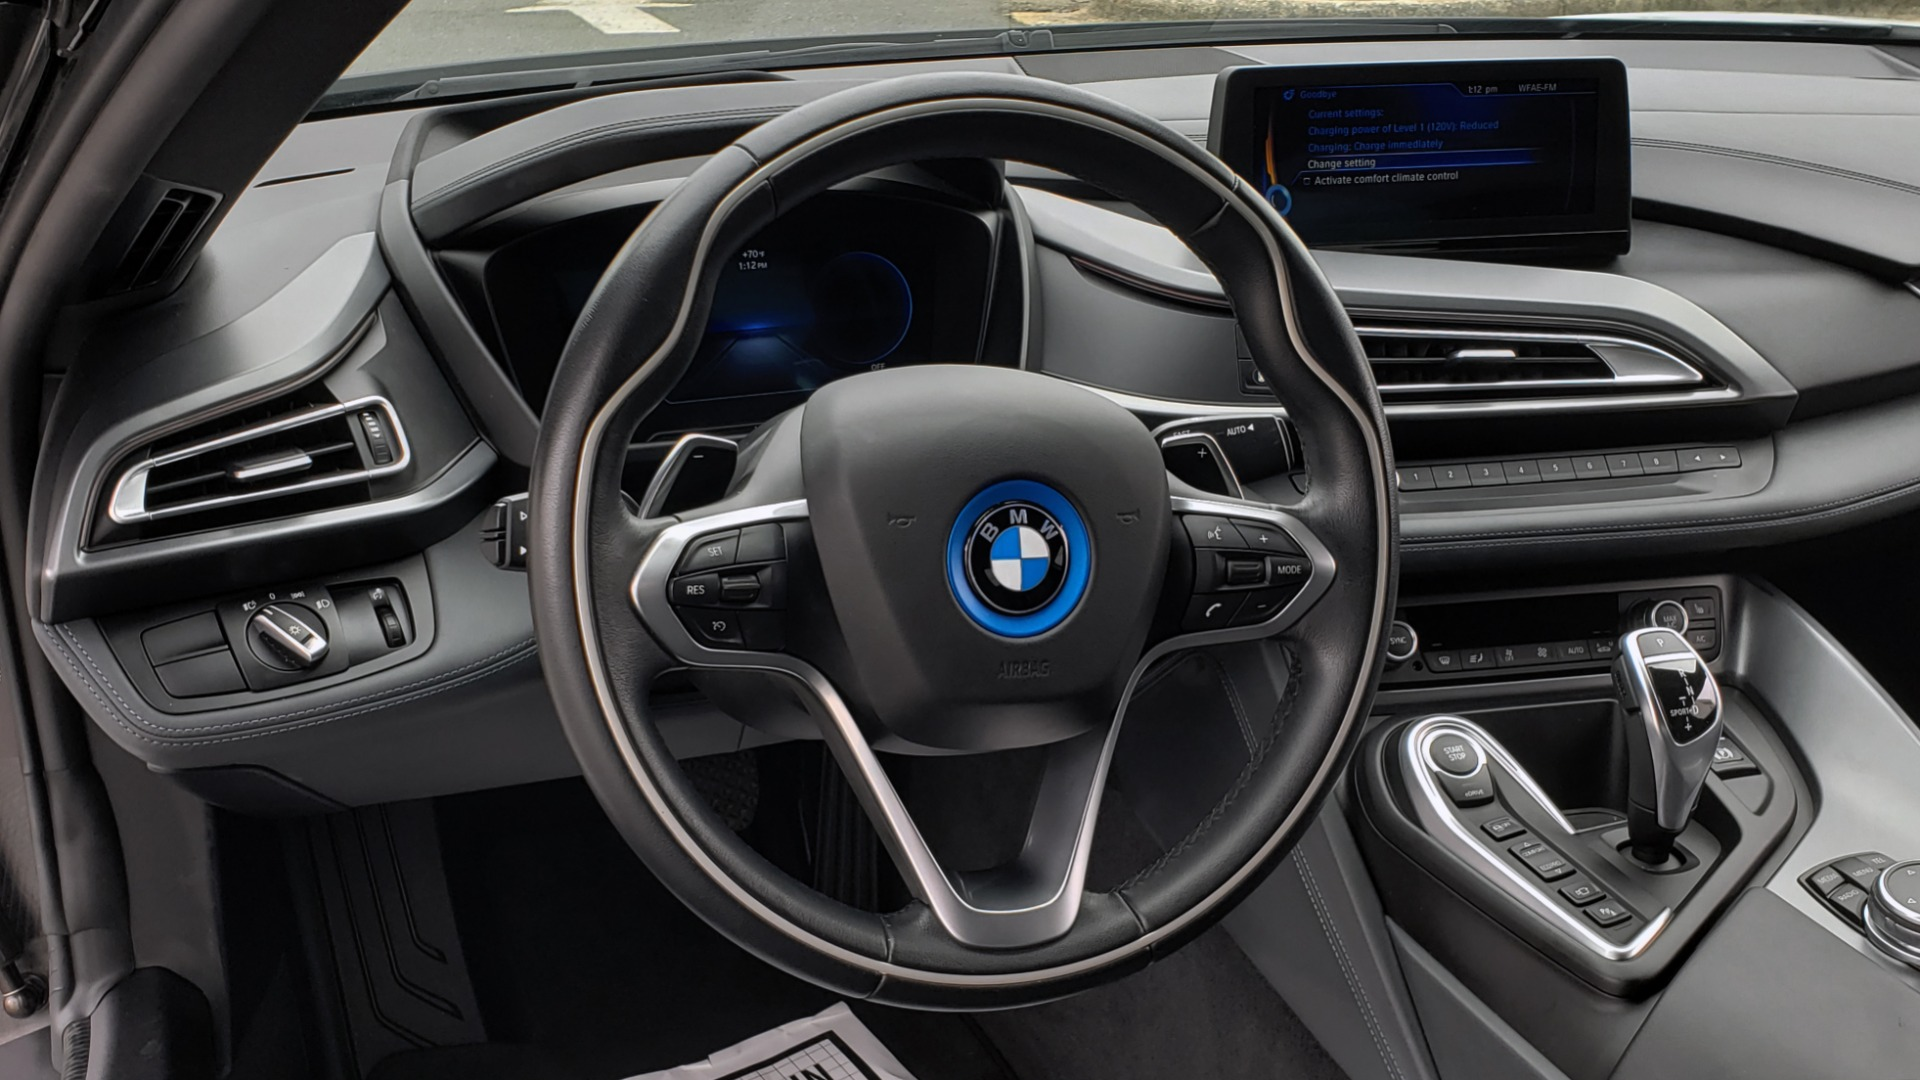 Used 2016 BMW i8 COUPE / GIGA WORLD / NAV / HUD / 20IN WHEELS / REARVIEW for sale Sold at Formula Imports in Charlotte NC 28227 30